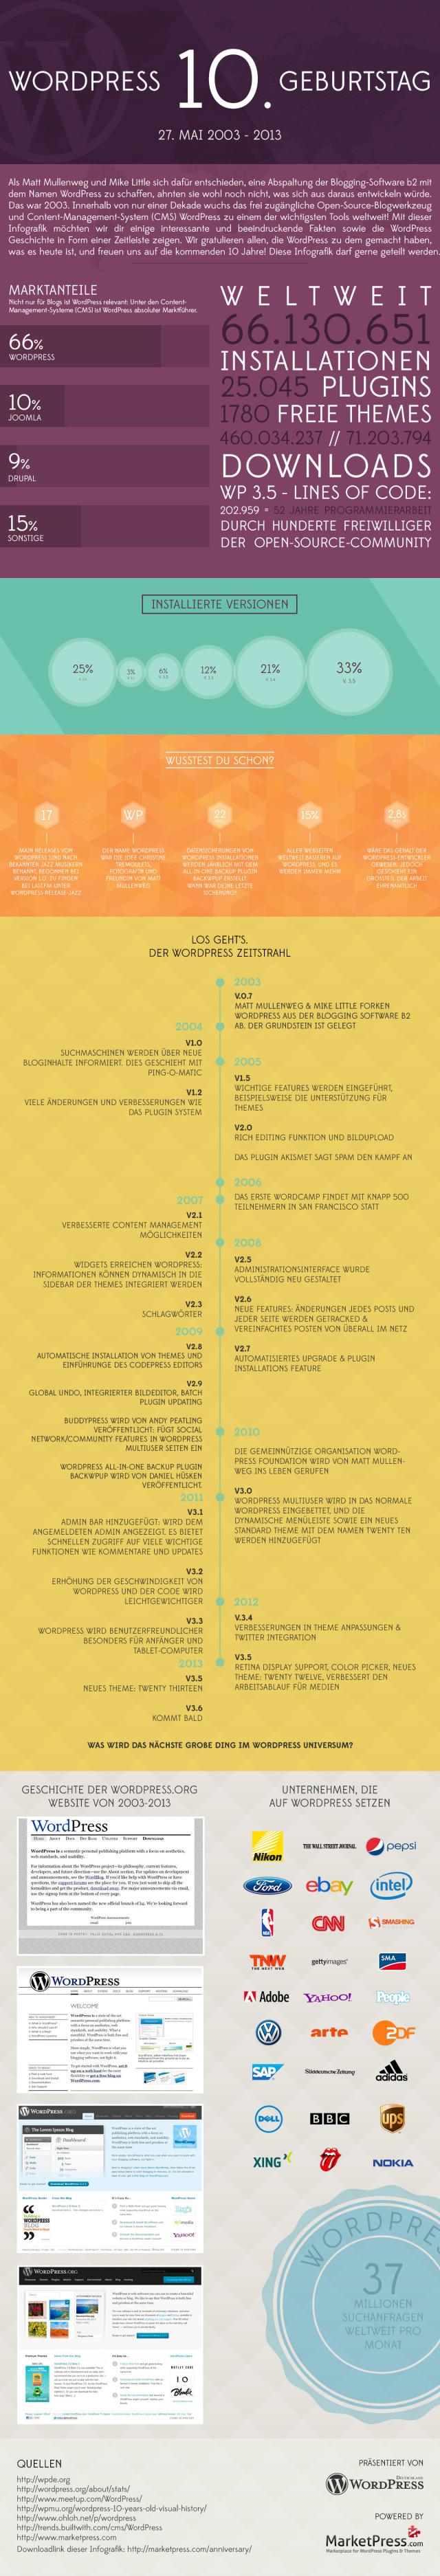 10_Jahre_WordPress_Infografik_powered_by MarketPress.com